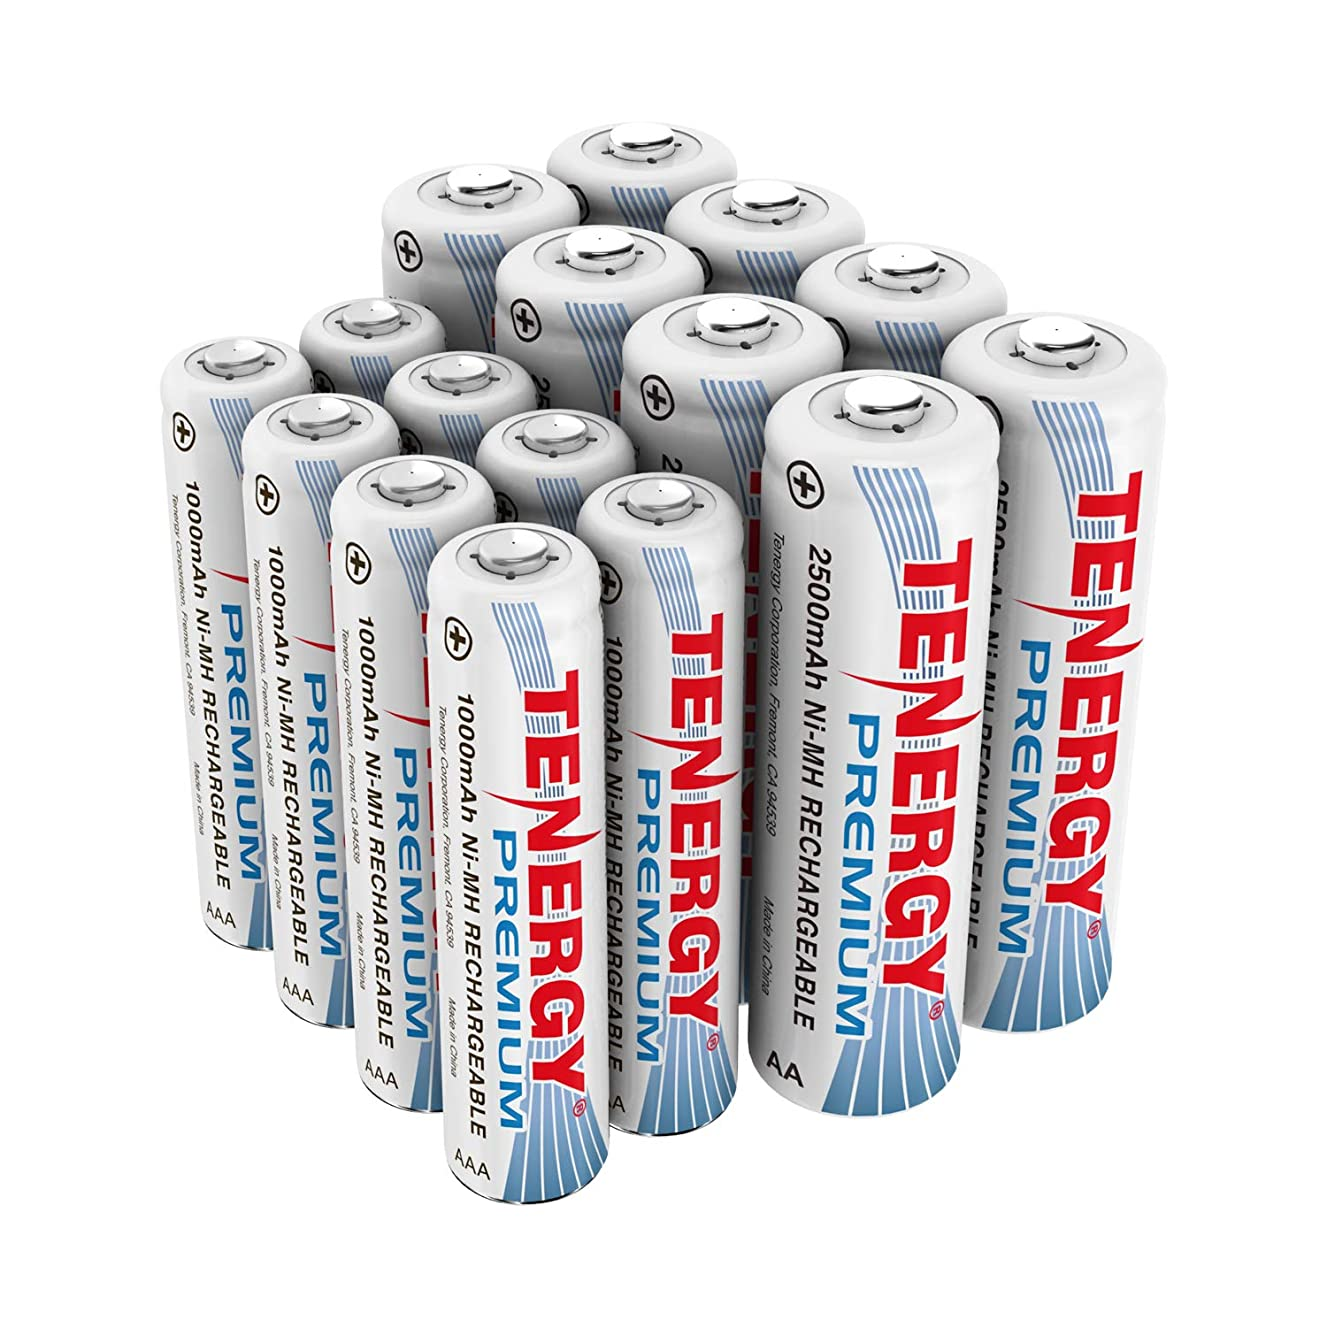 Tenergy Premium NiMH Rechargeable Battery Package: 8 AA 2500mAh + 8 AAA 1000mAh